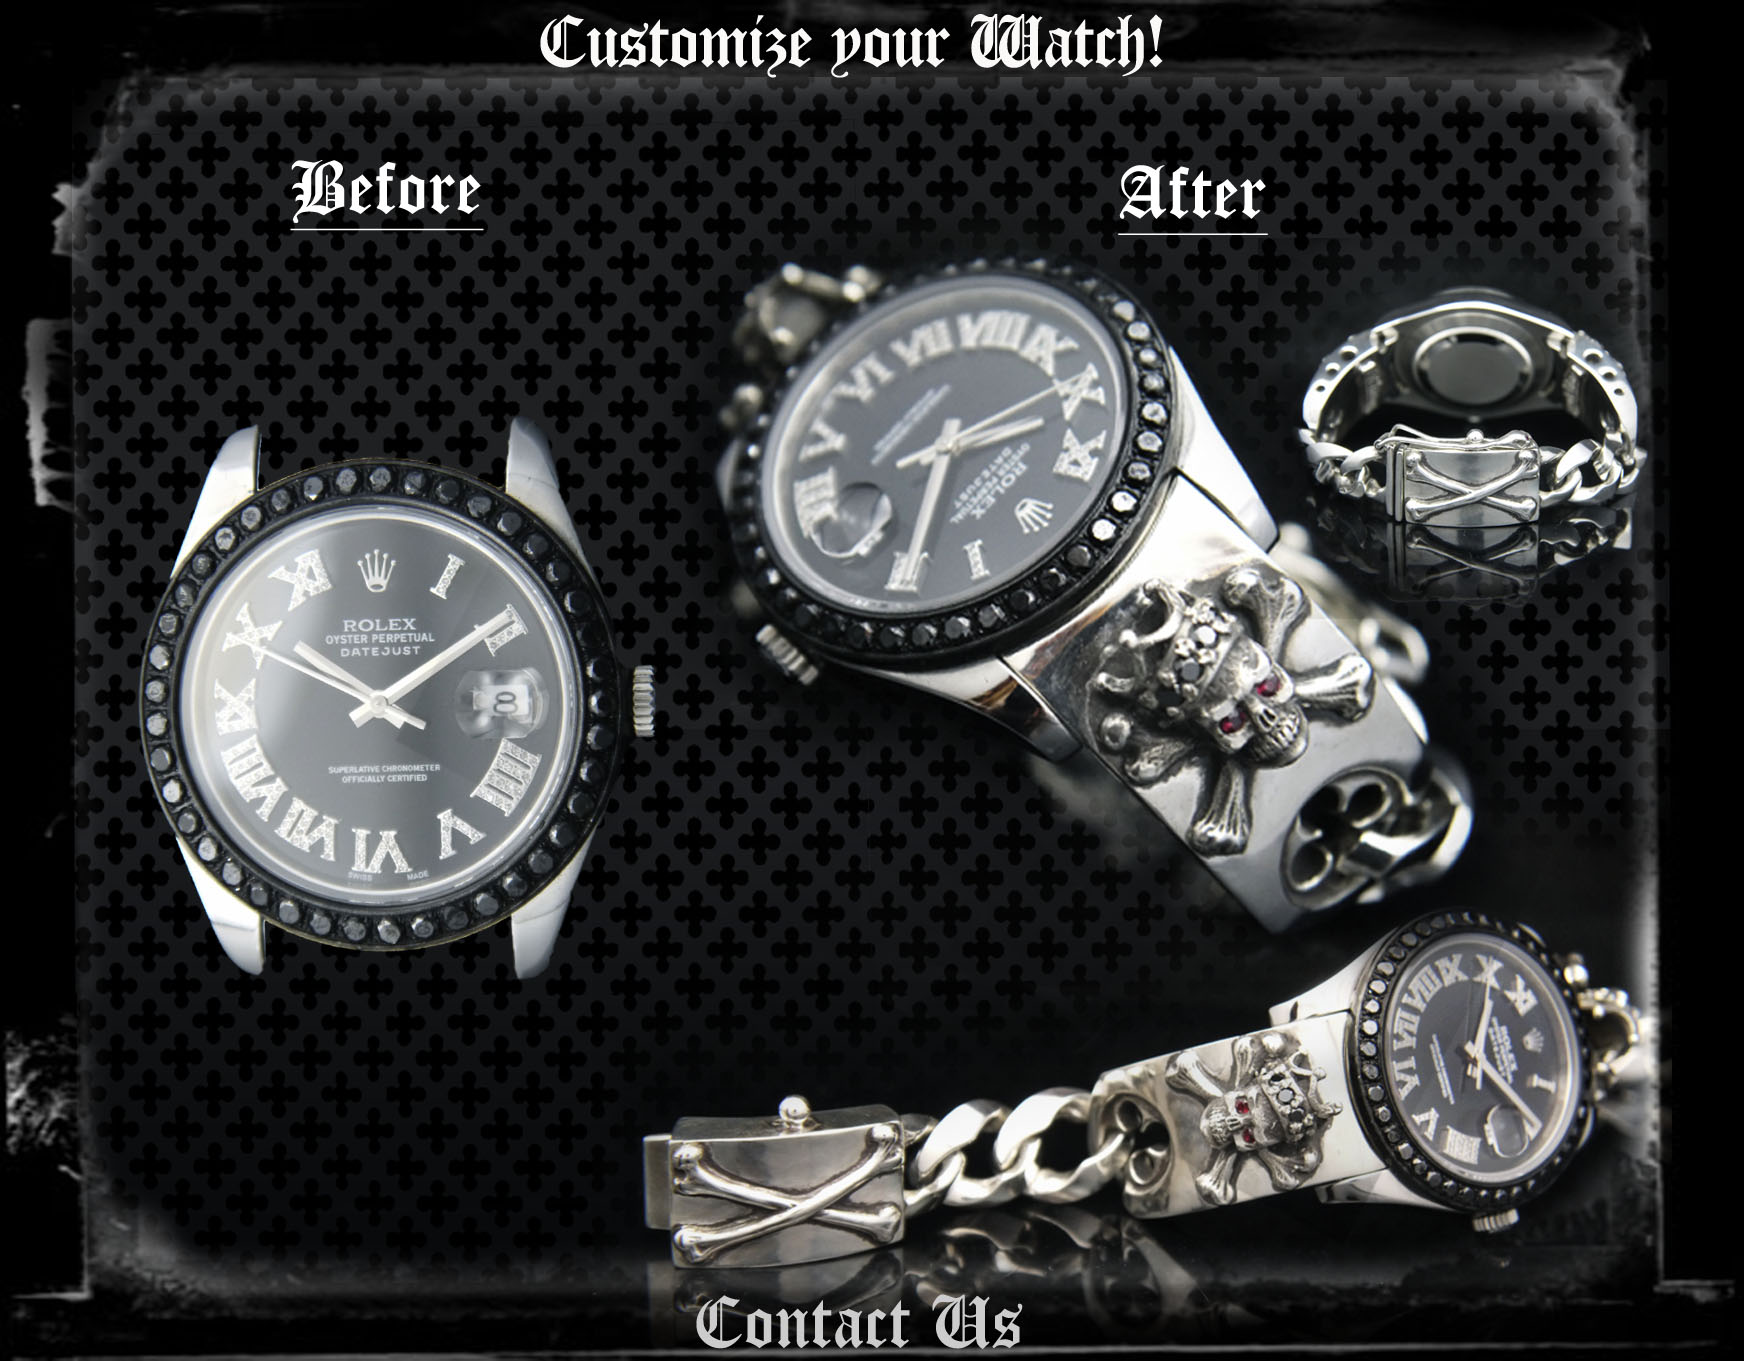 customize-your-watch-before-after.jpg